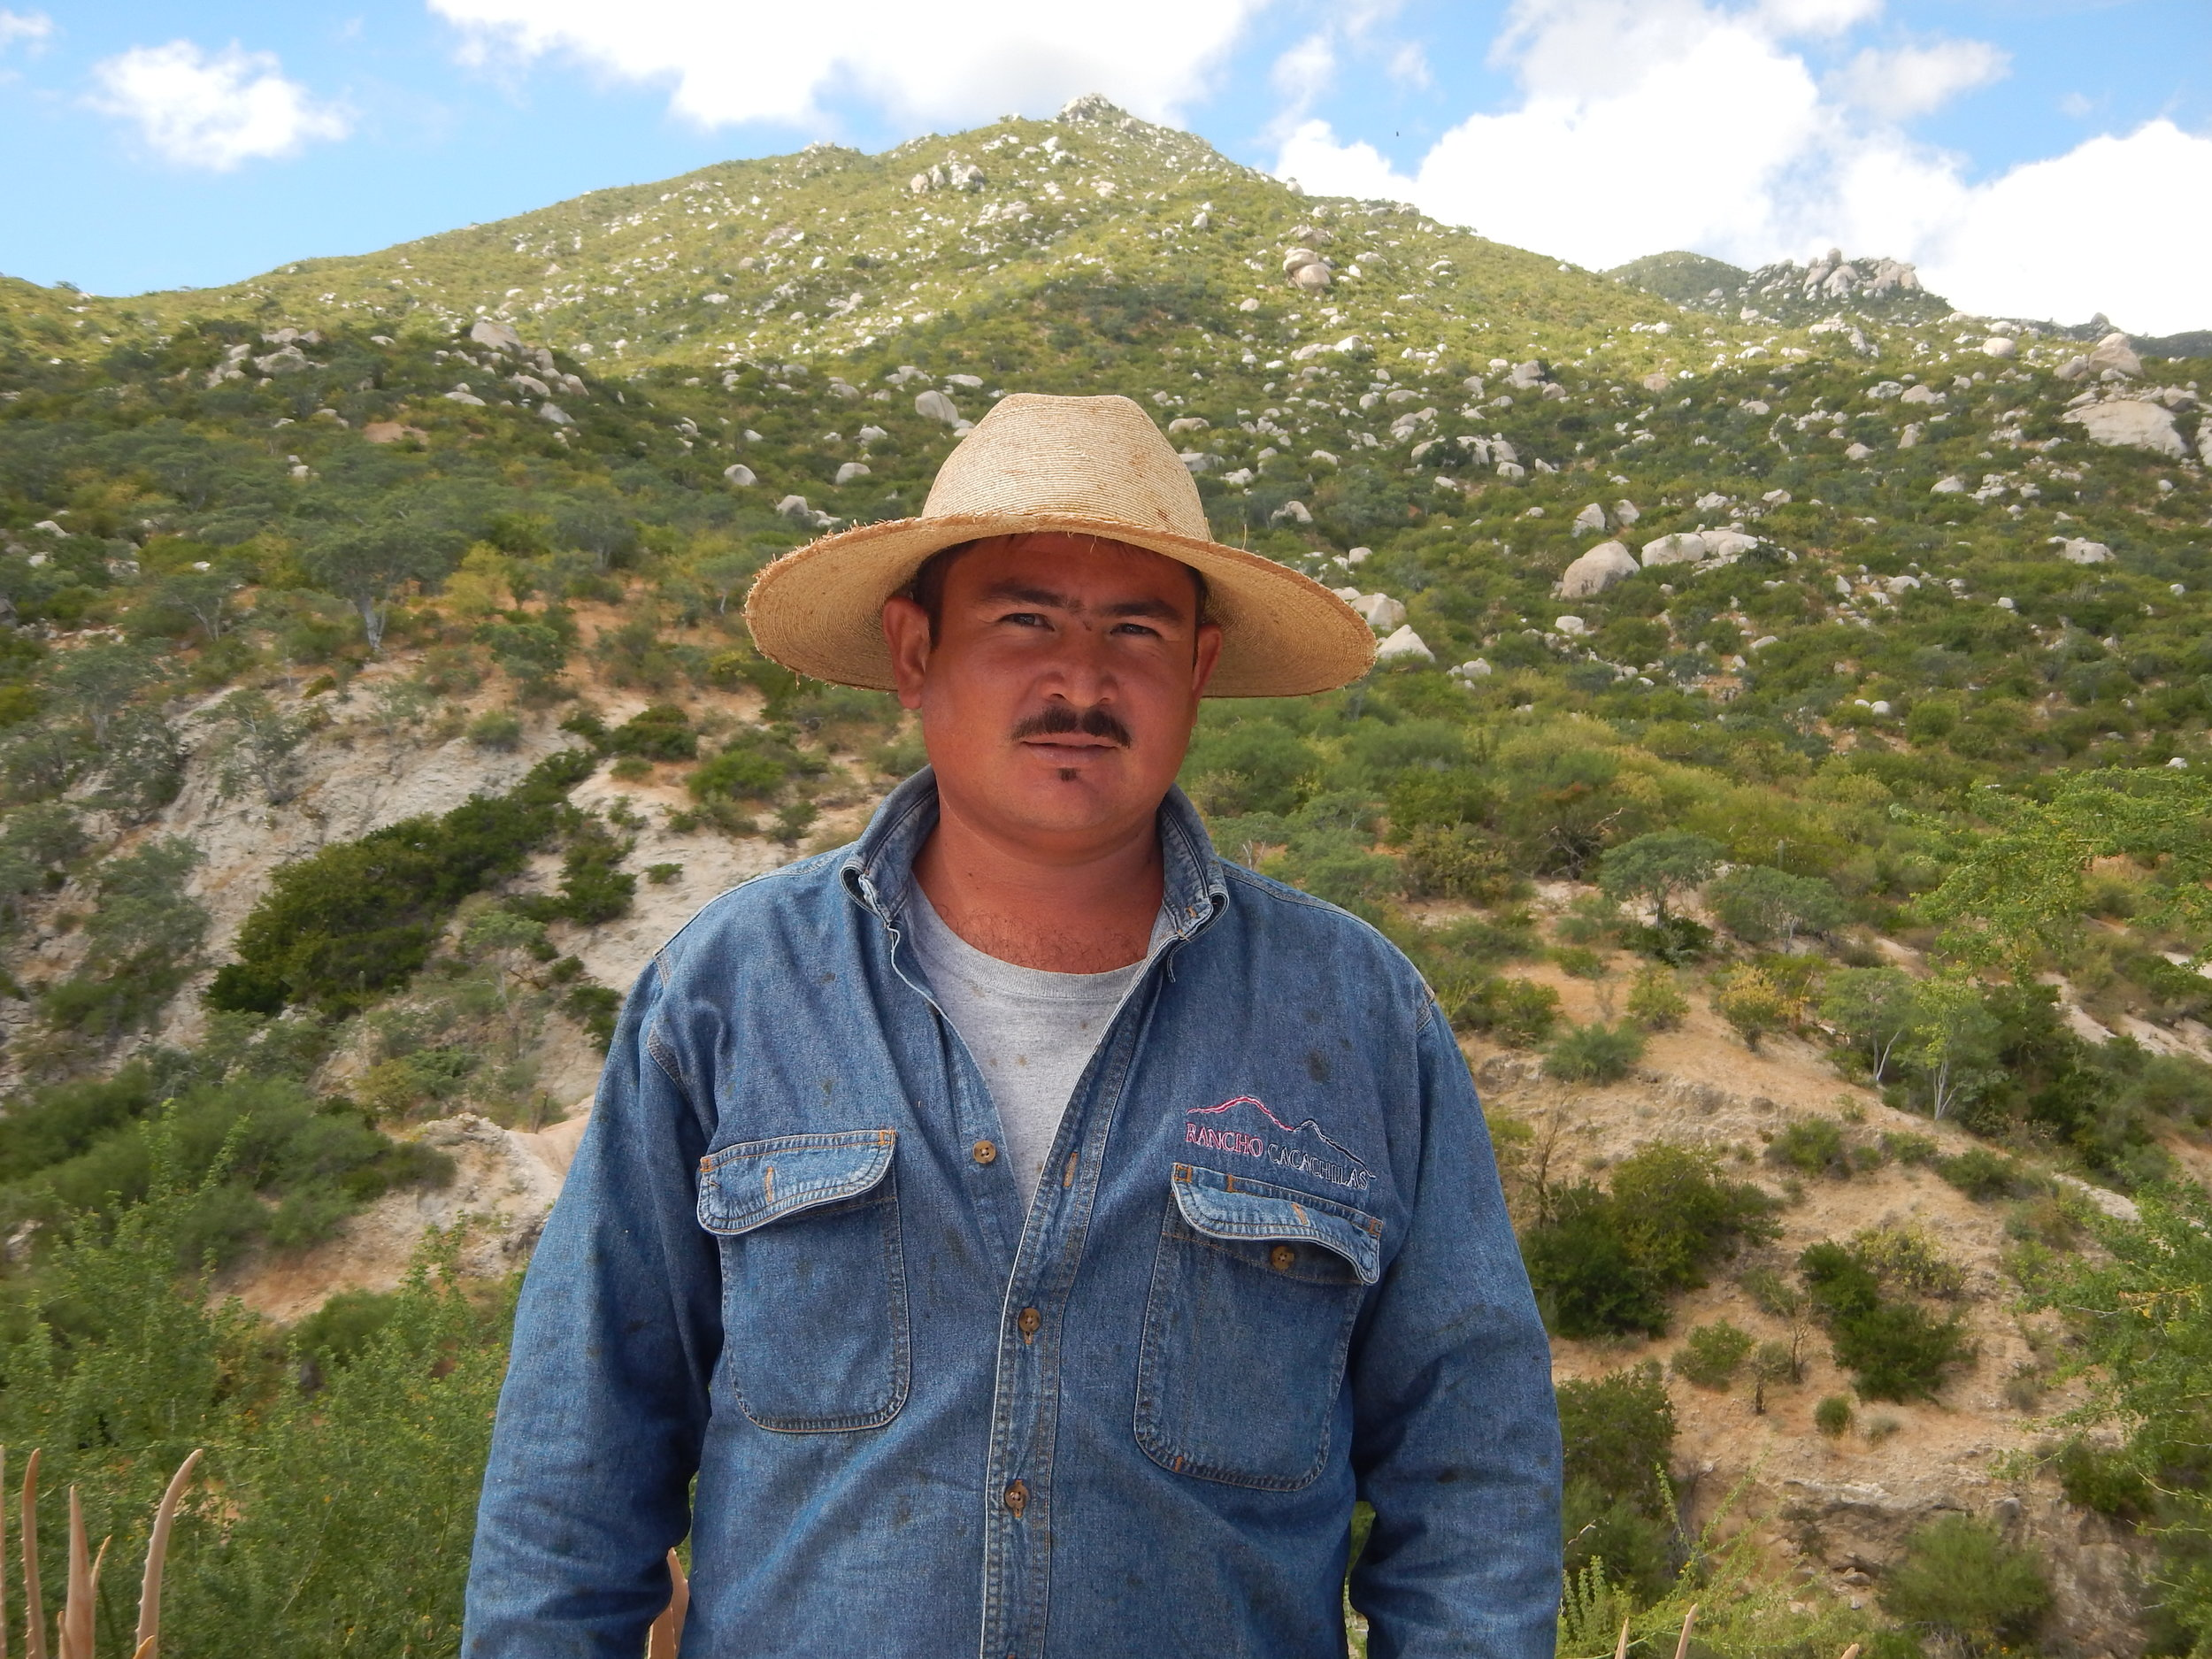 Jose Antonio Geraldo Geraldo (Toño)   Toño is the vaquero in charge of the electric fences in the grazing program. These fences are a very useful tool to have a more direct impact of tilling and fertilizing that we want the cattle to have on the land.